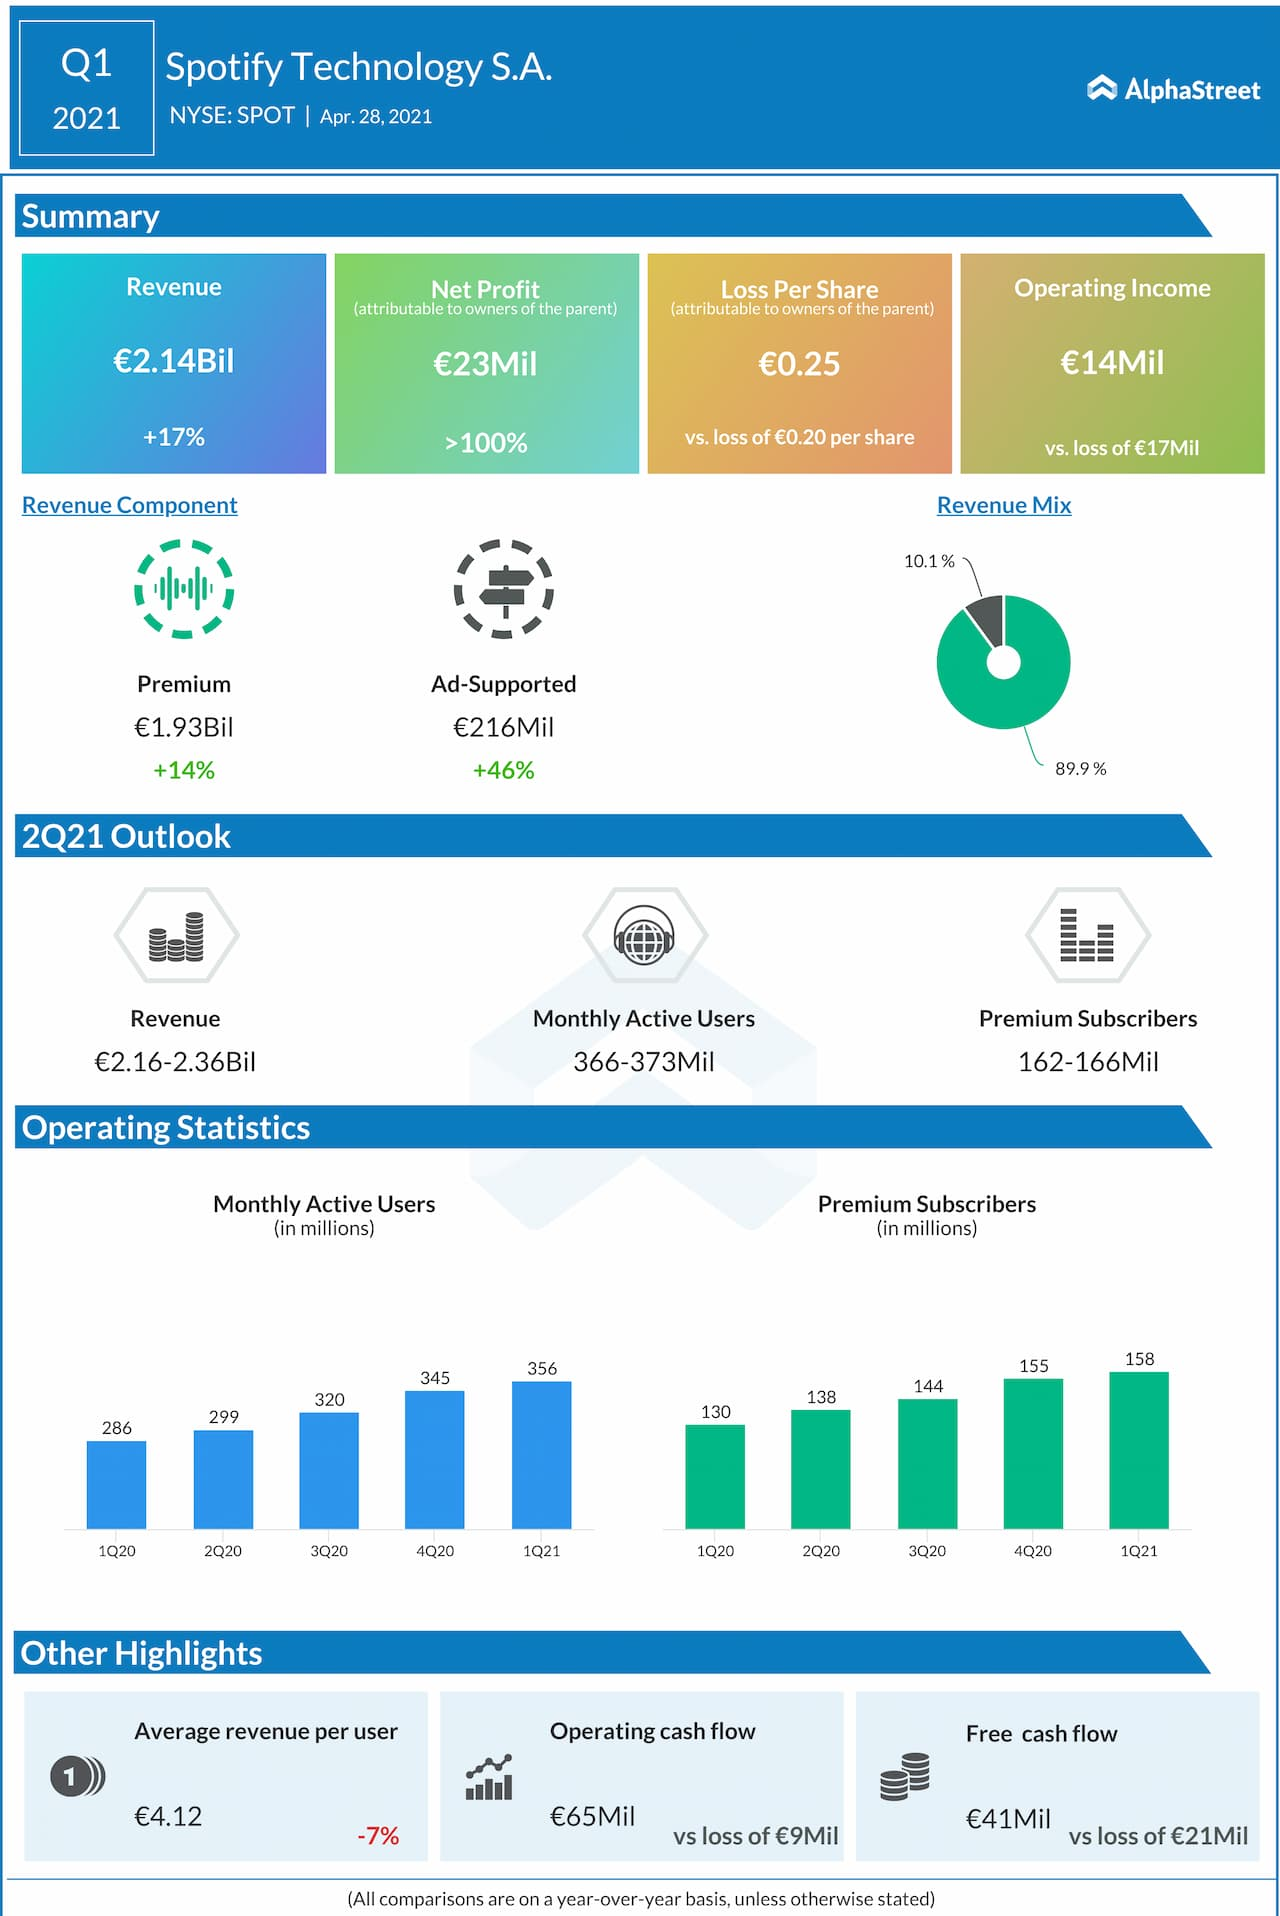 Spotify Q1 2021 earnings infographic